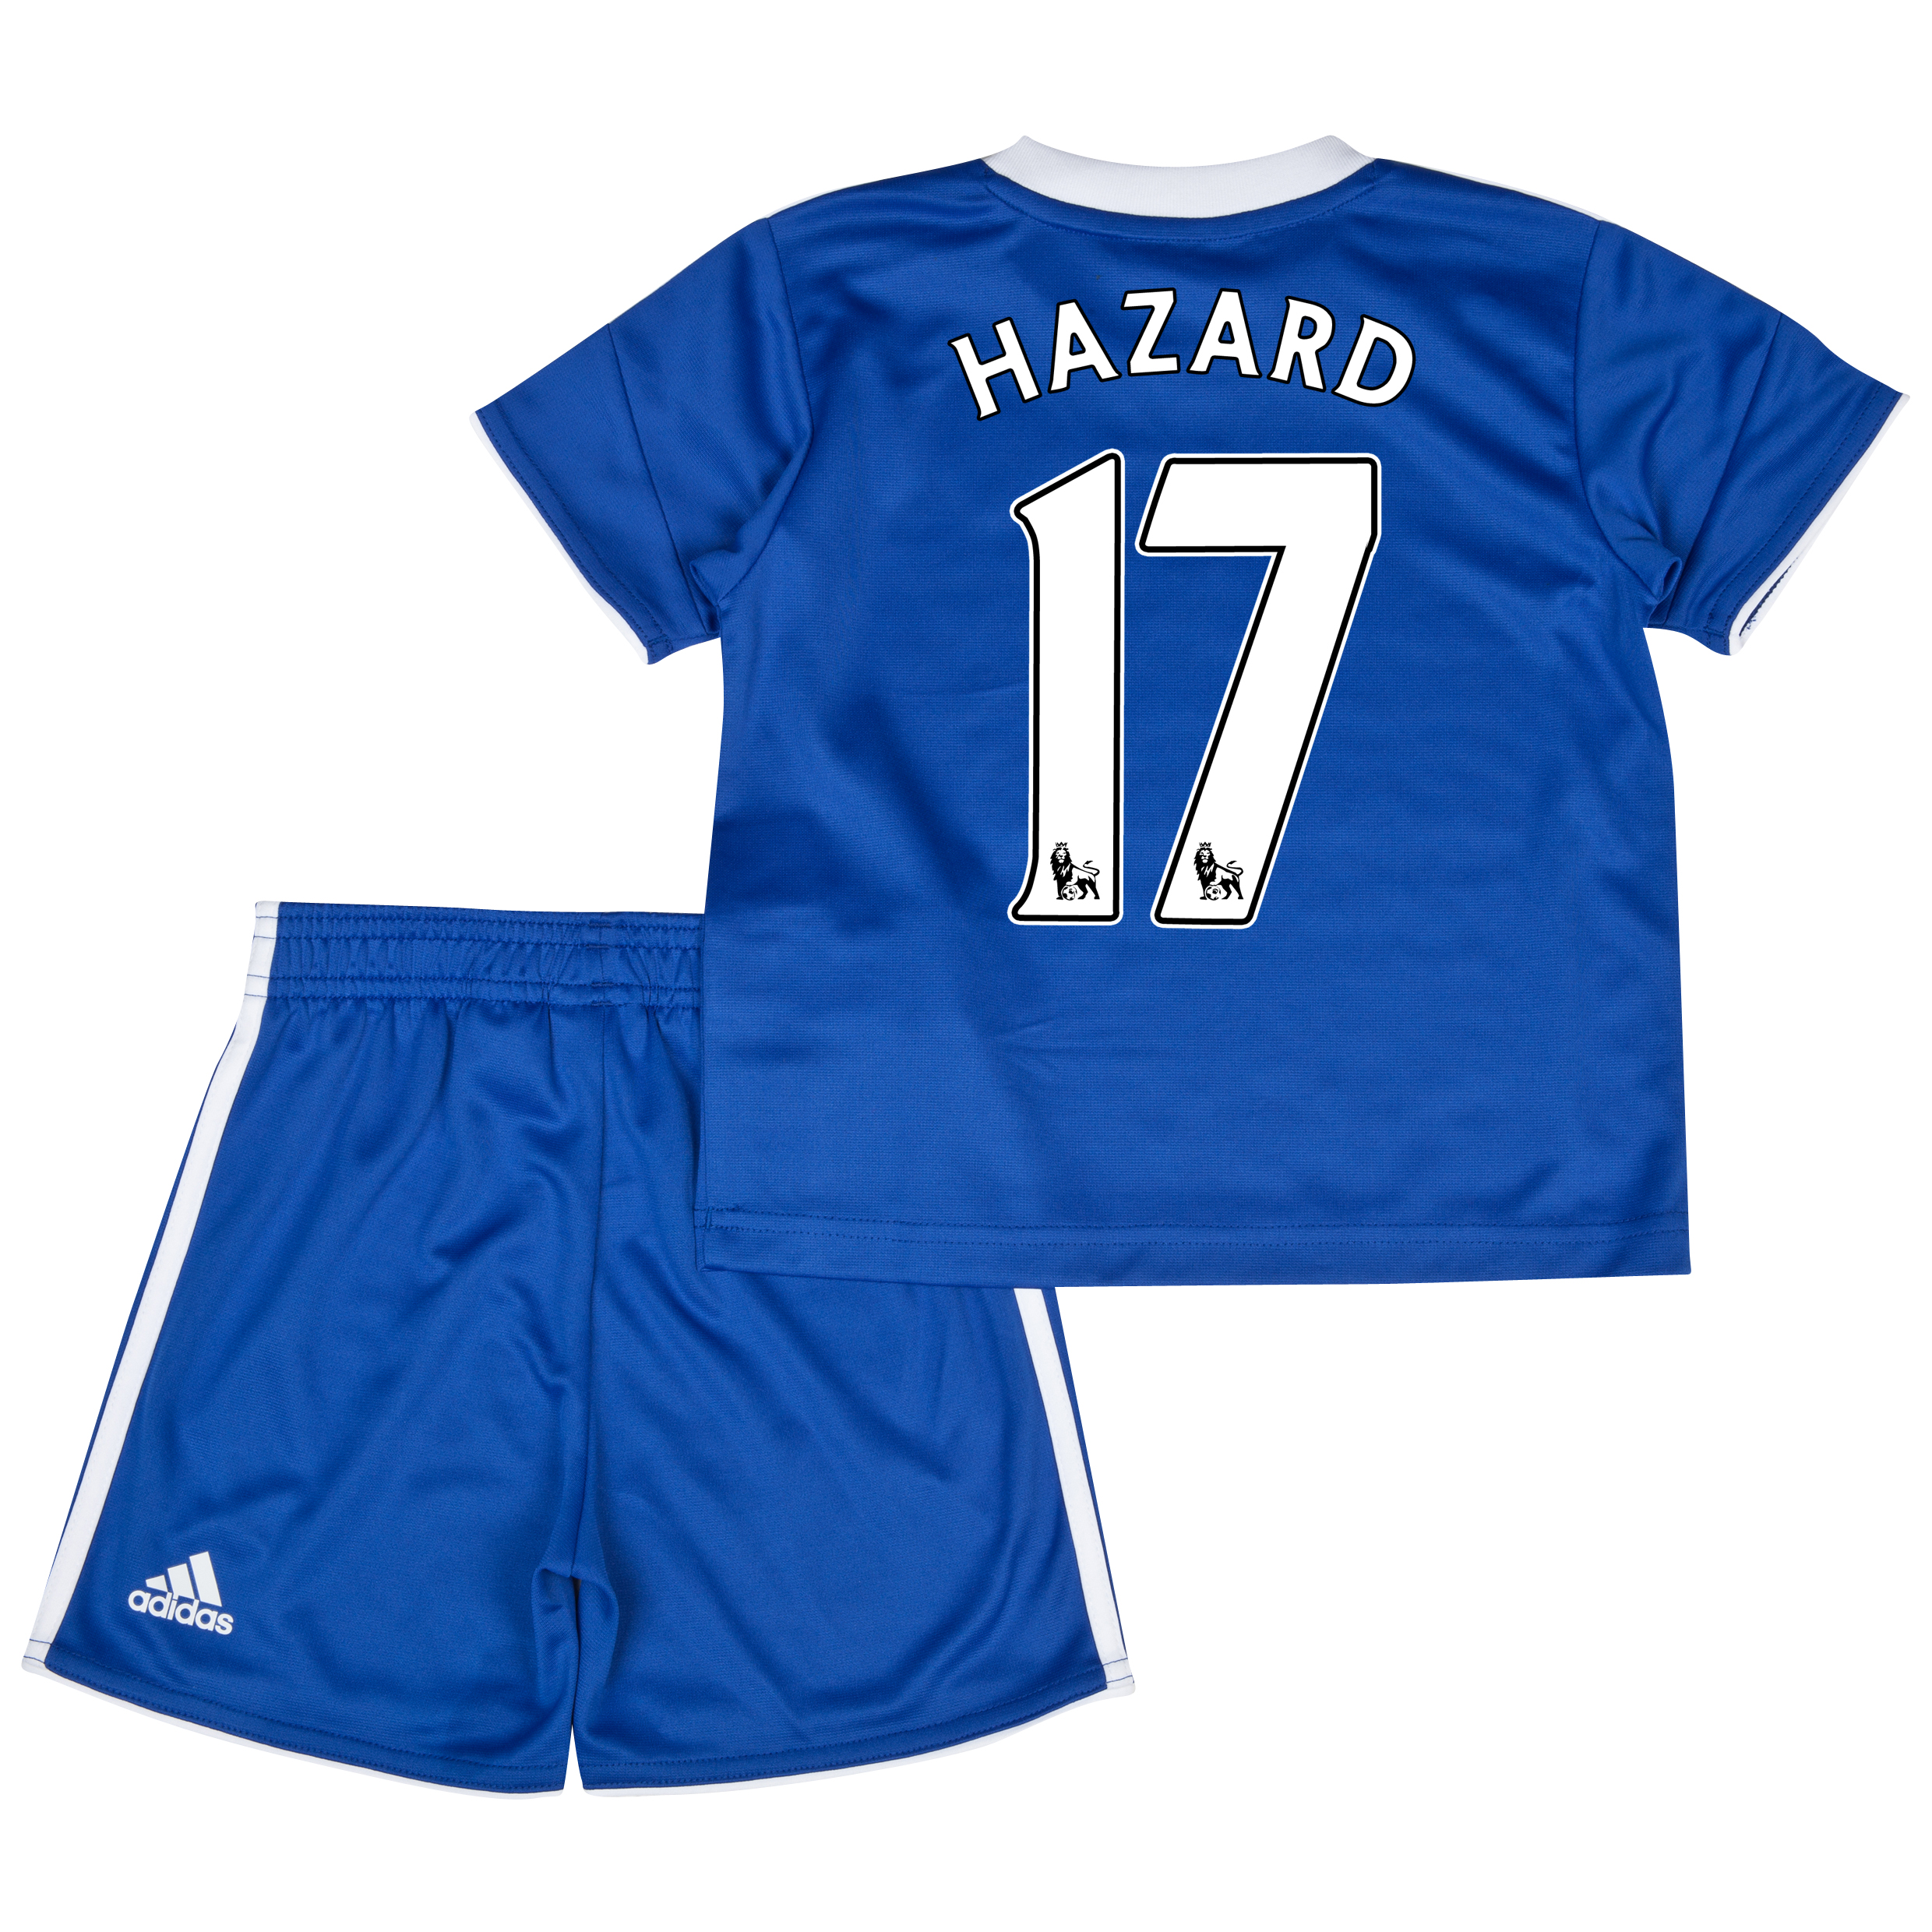 Chelsea Home Mini Kit 2013/14 with Hazard 17 printing